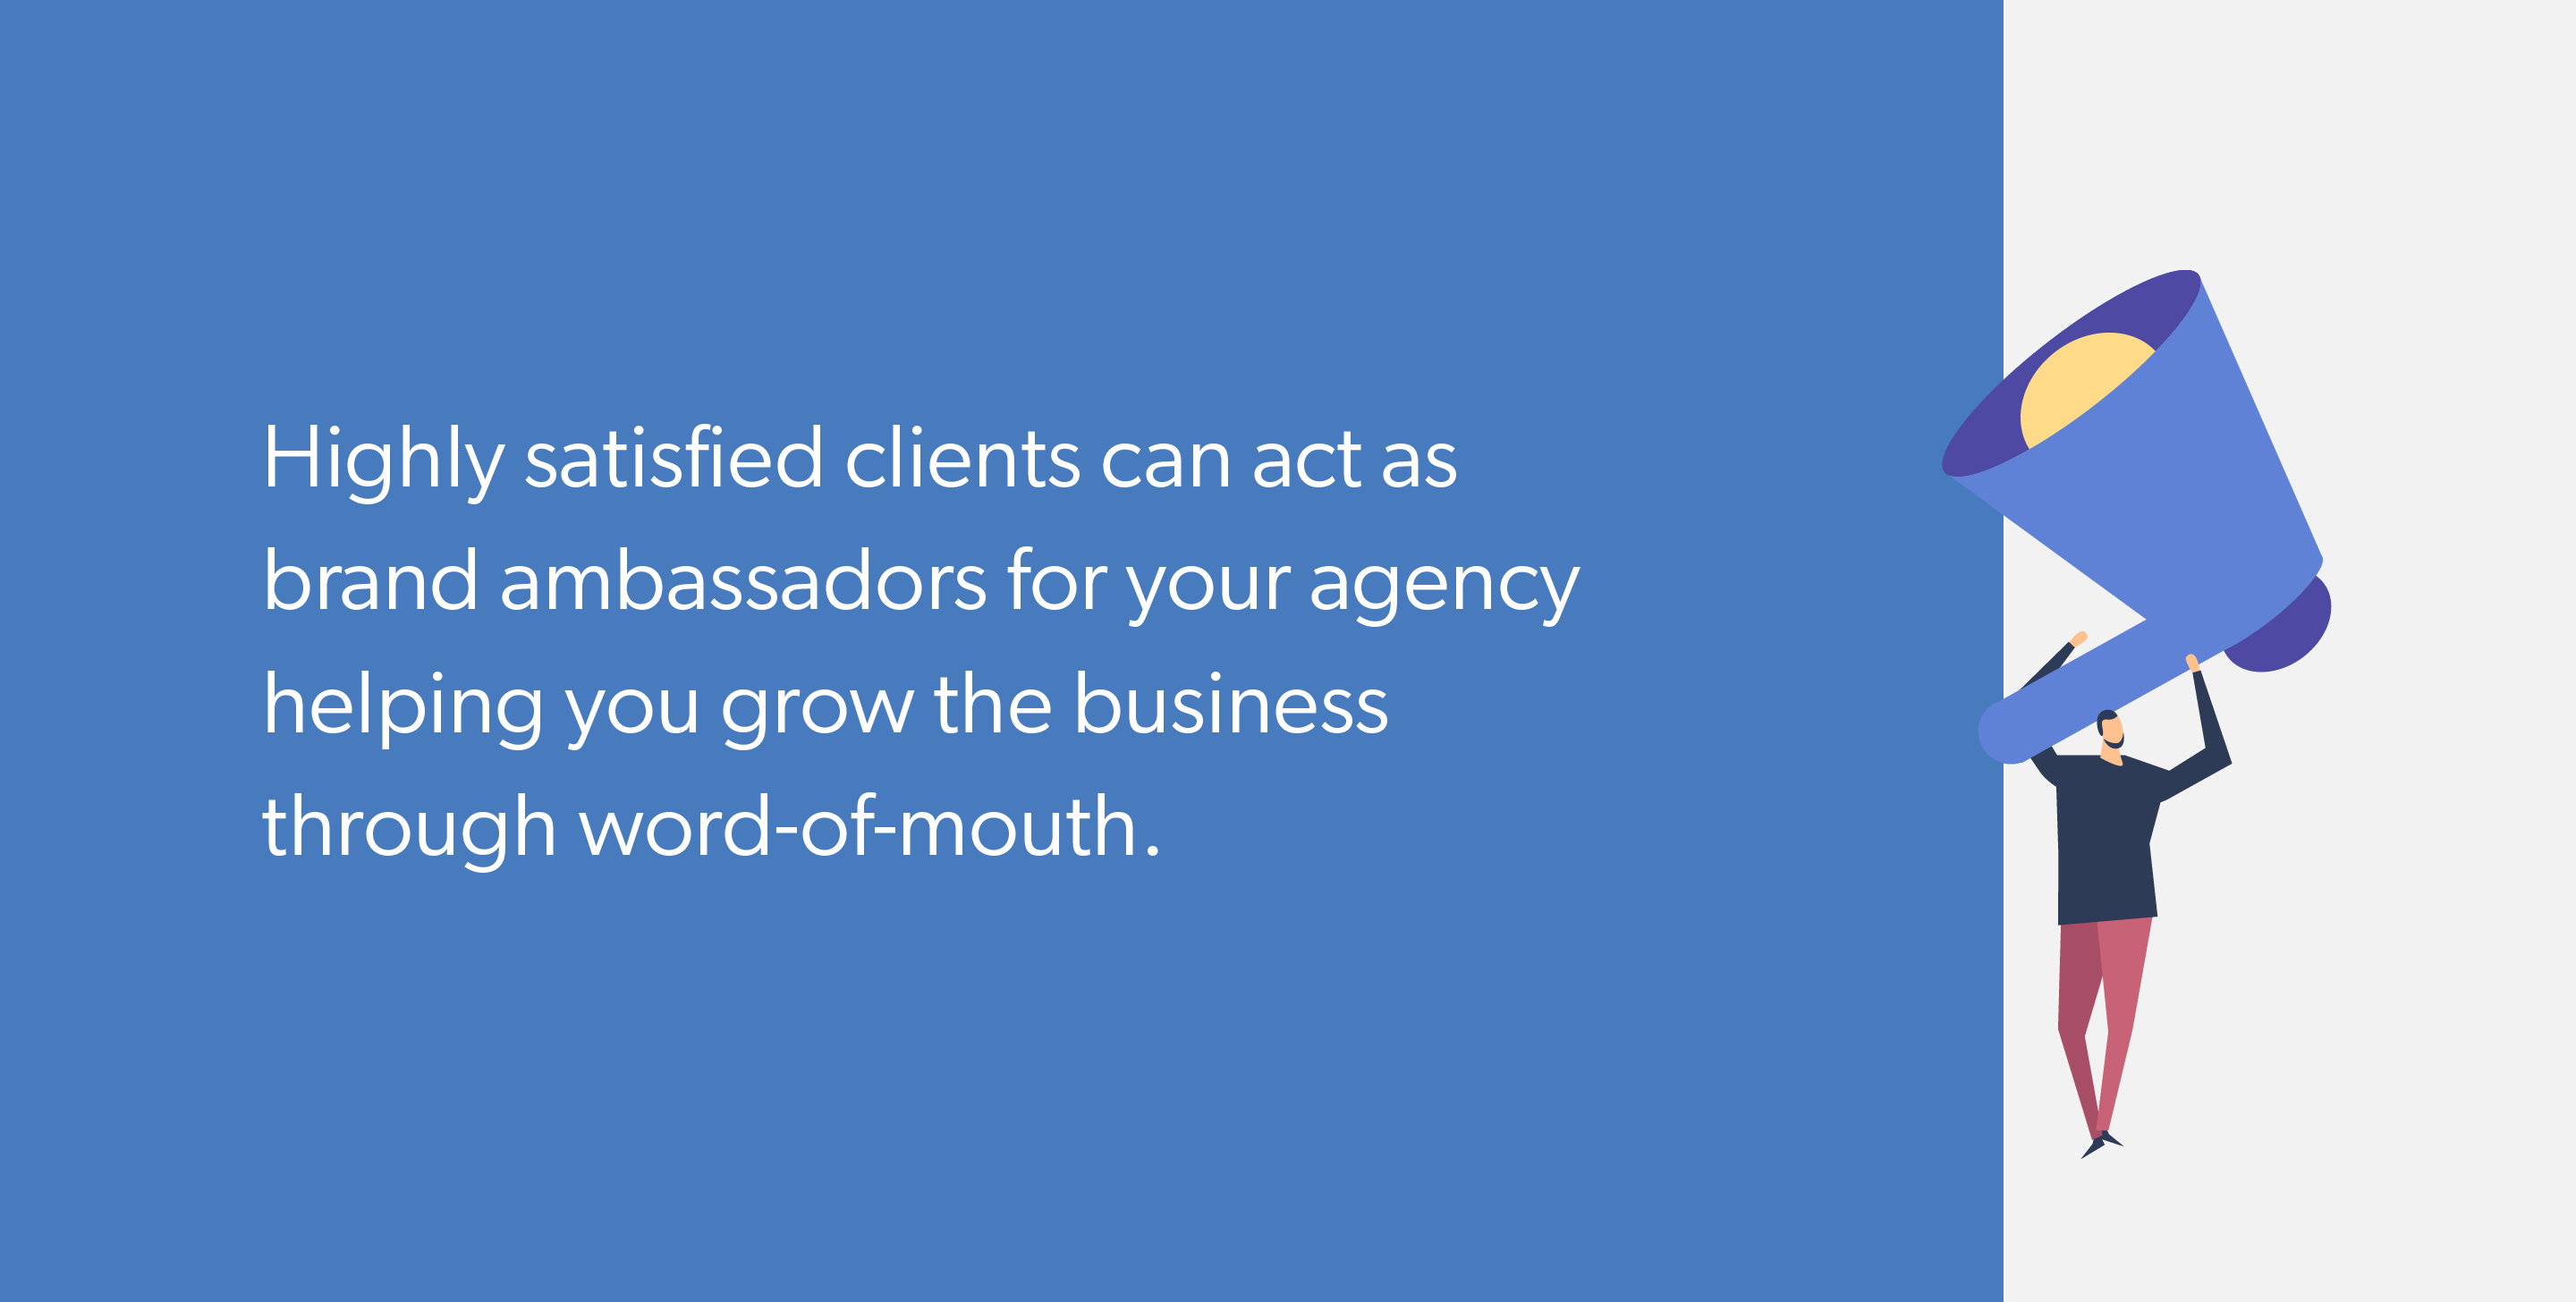 Highly satisfied clients can act as brand ambassadors for your agency helping you grow the business through word-of-mouth.